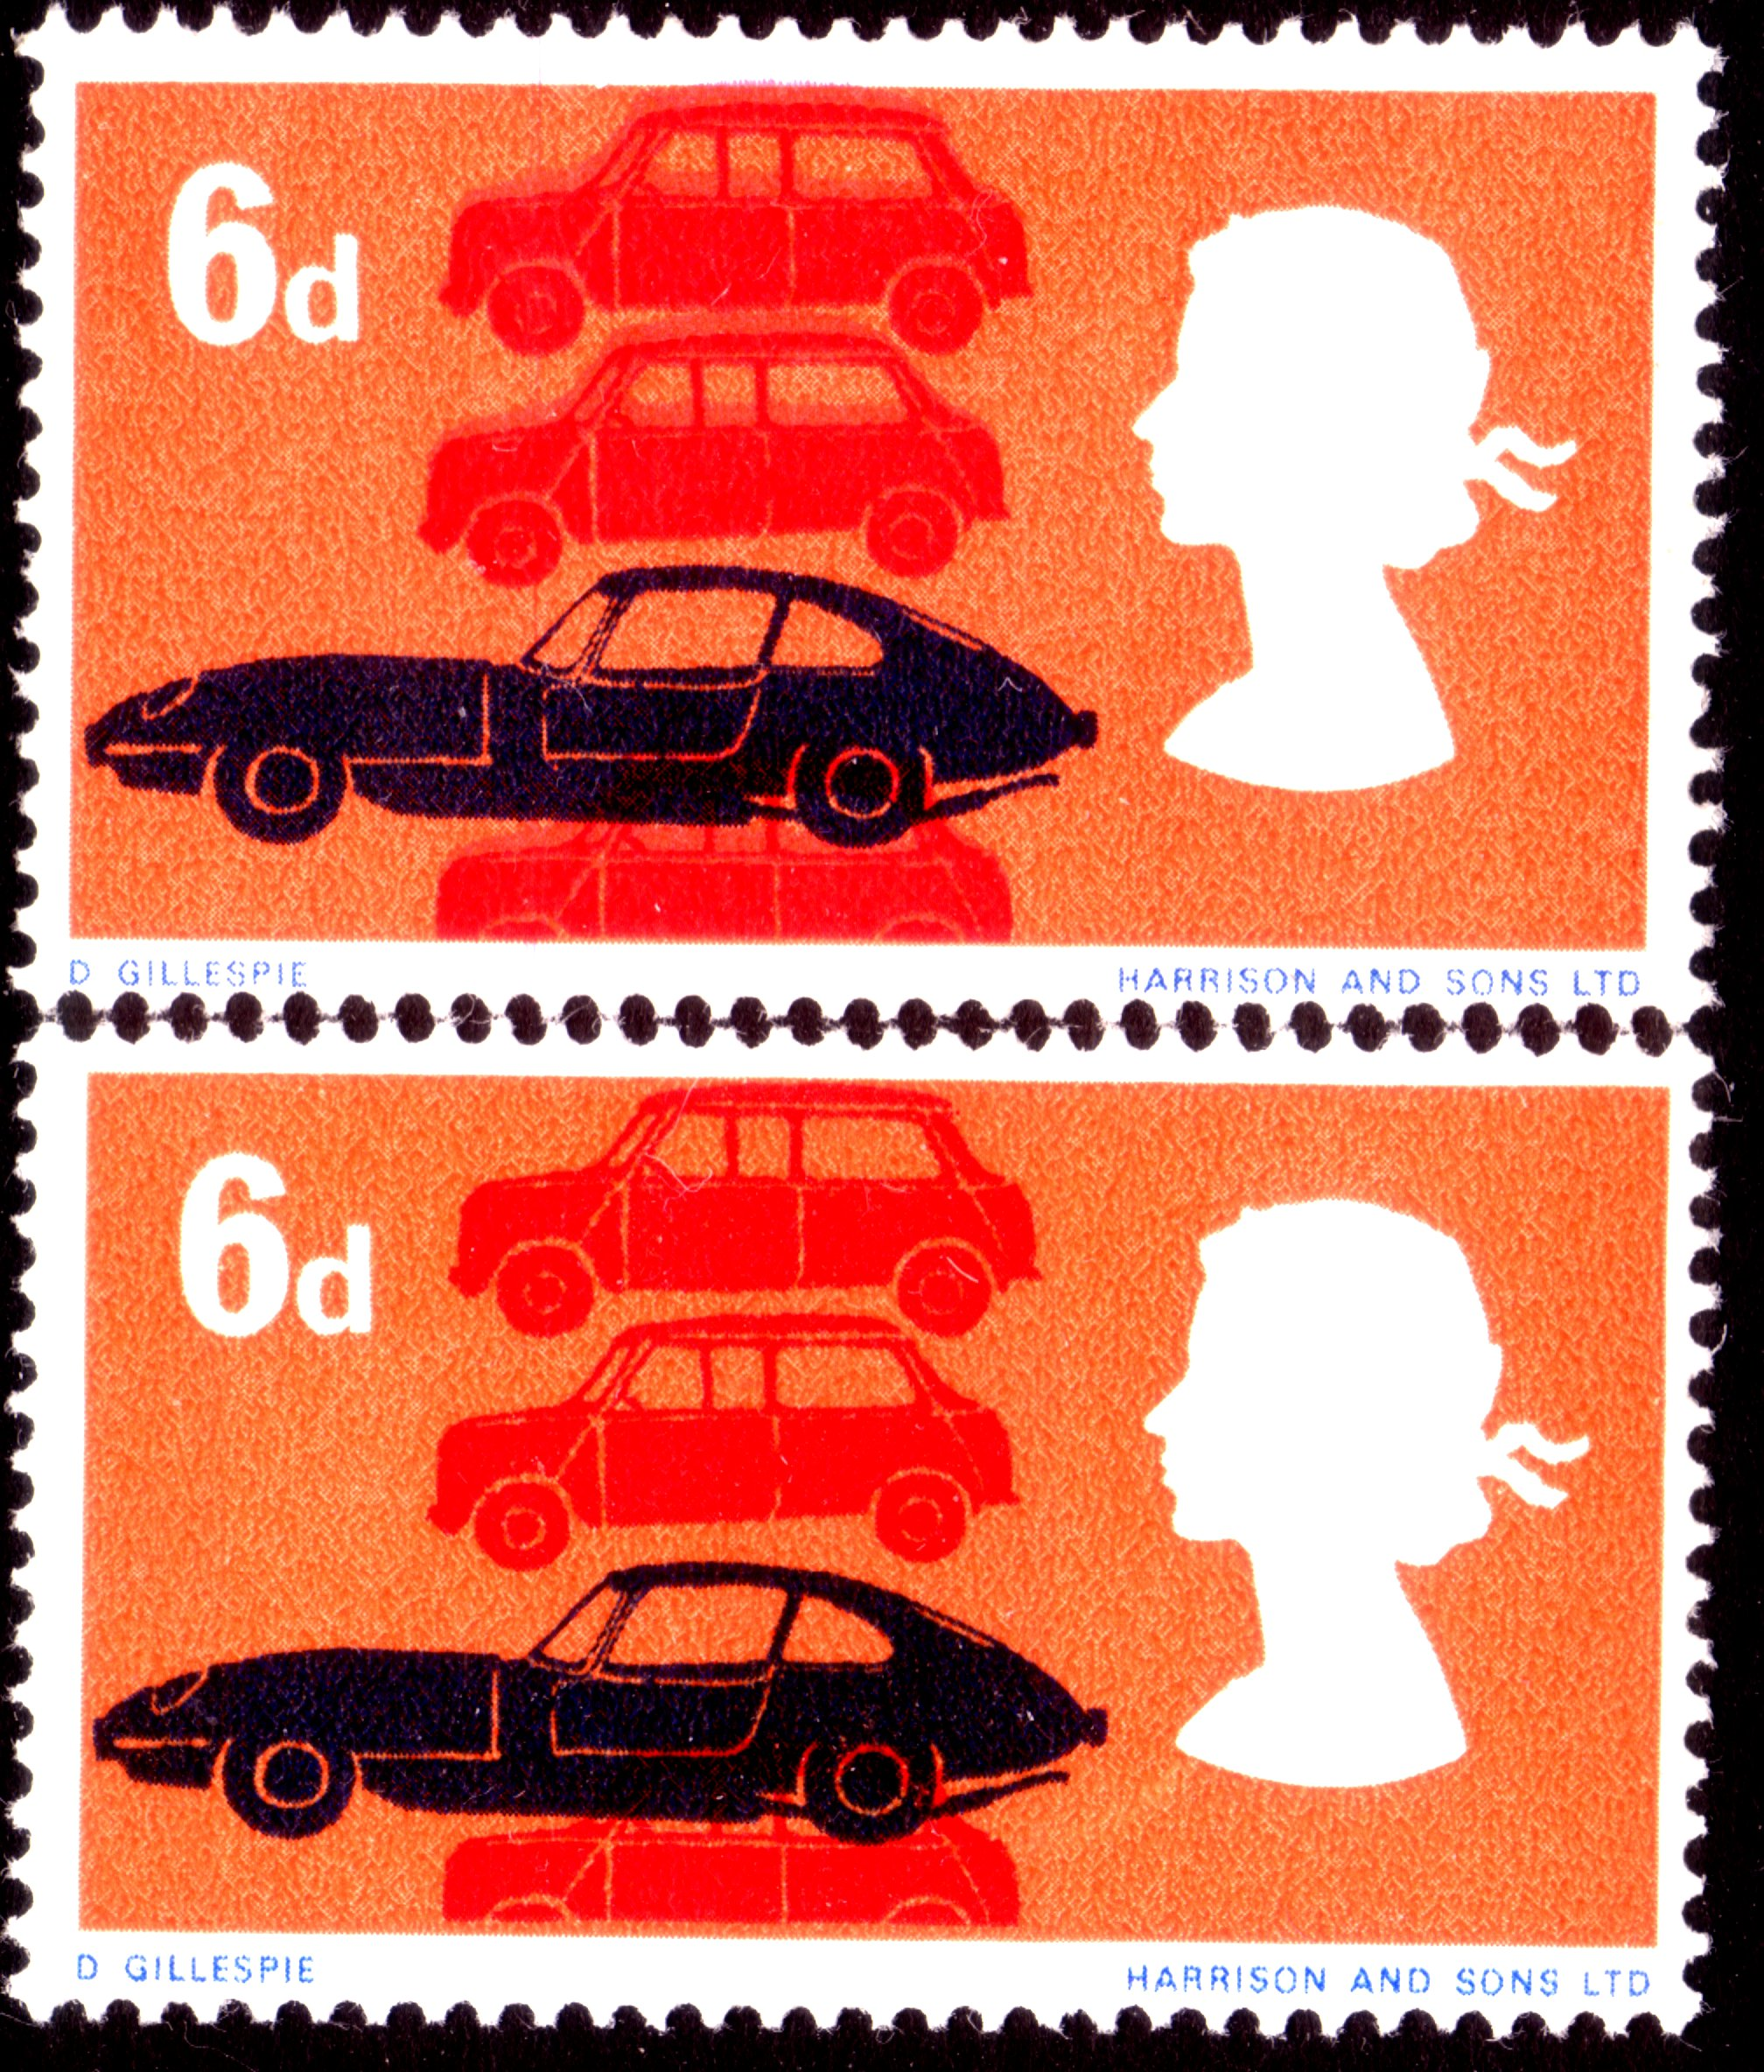 1966 6d ORDINARY PAPER BRITISH TECHNOLOGY FRESH MOUNTED MINT MINIS DOUBLED UNLISTED VARIETY - SOLD